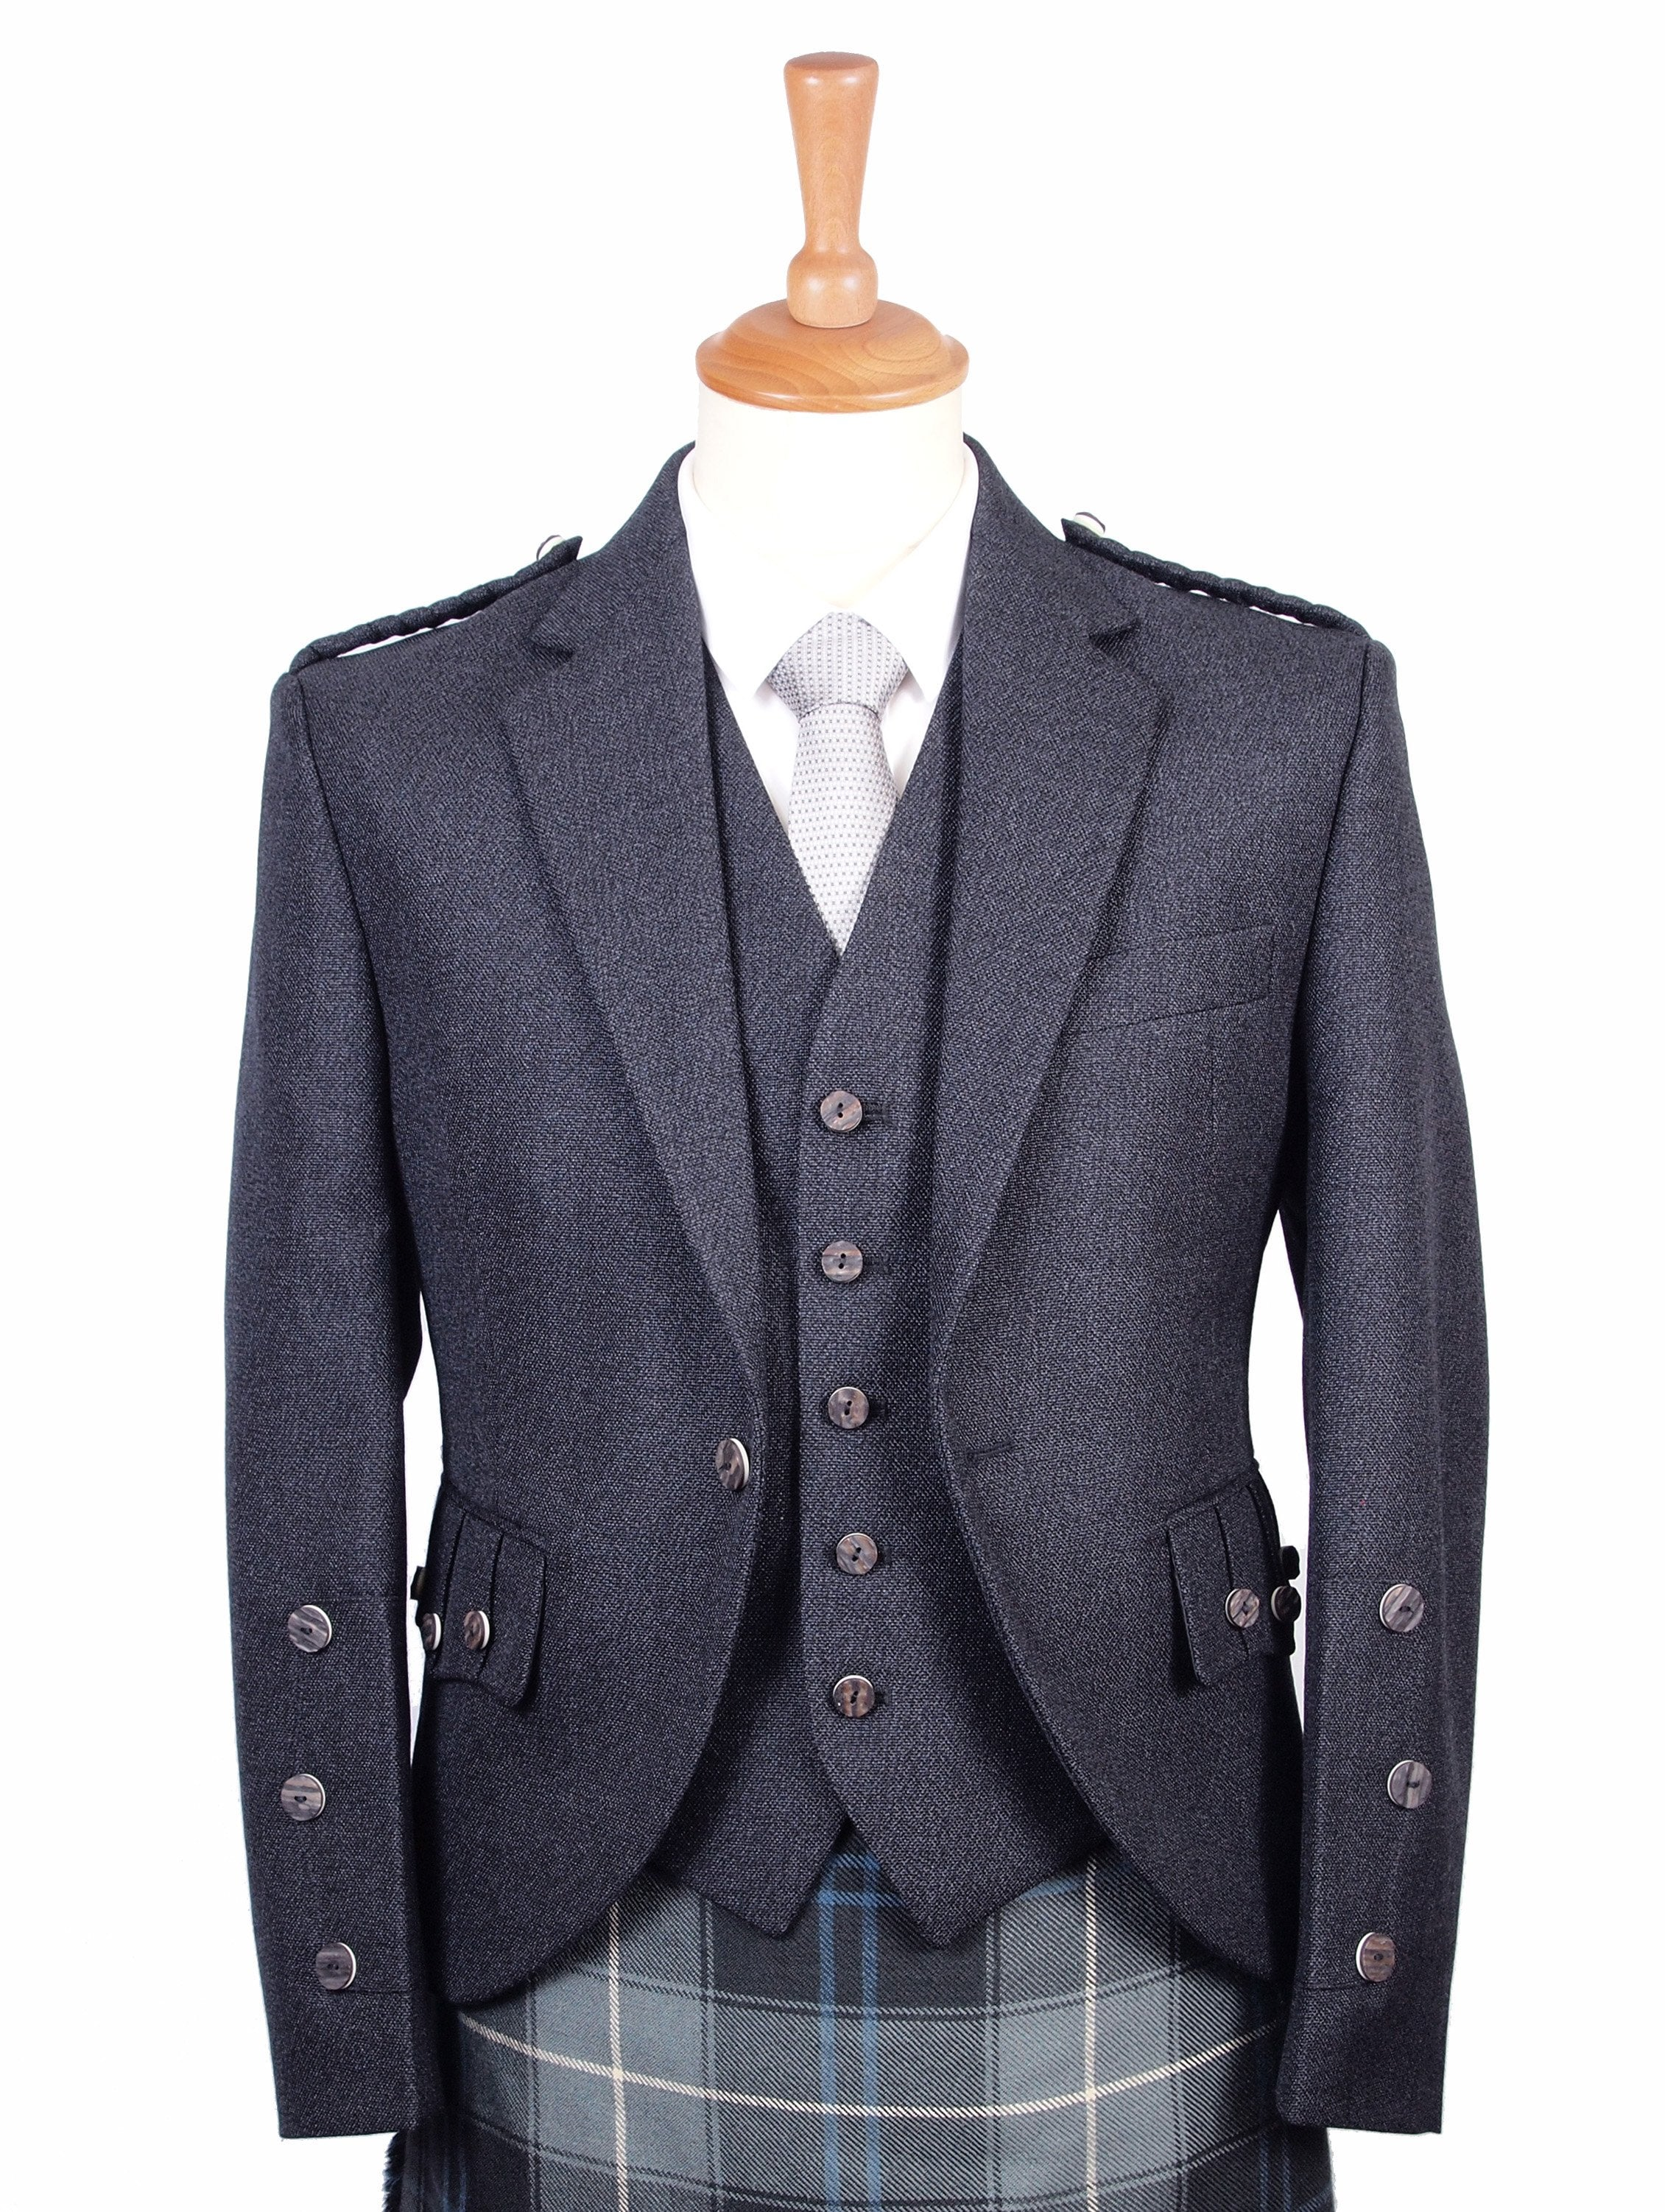 Braemar Jacket and Vest